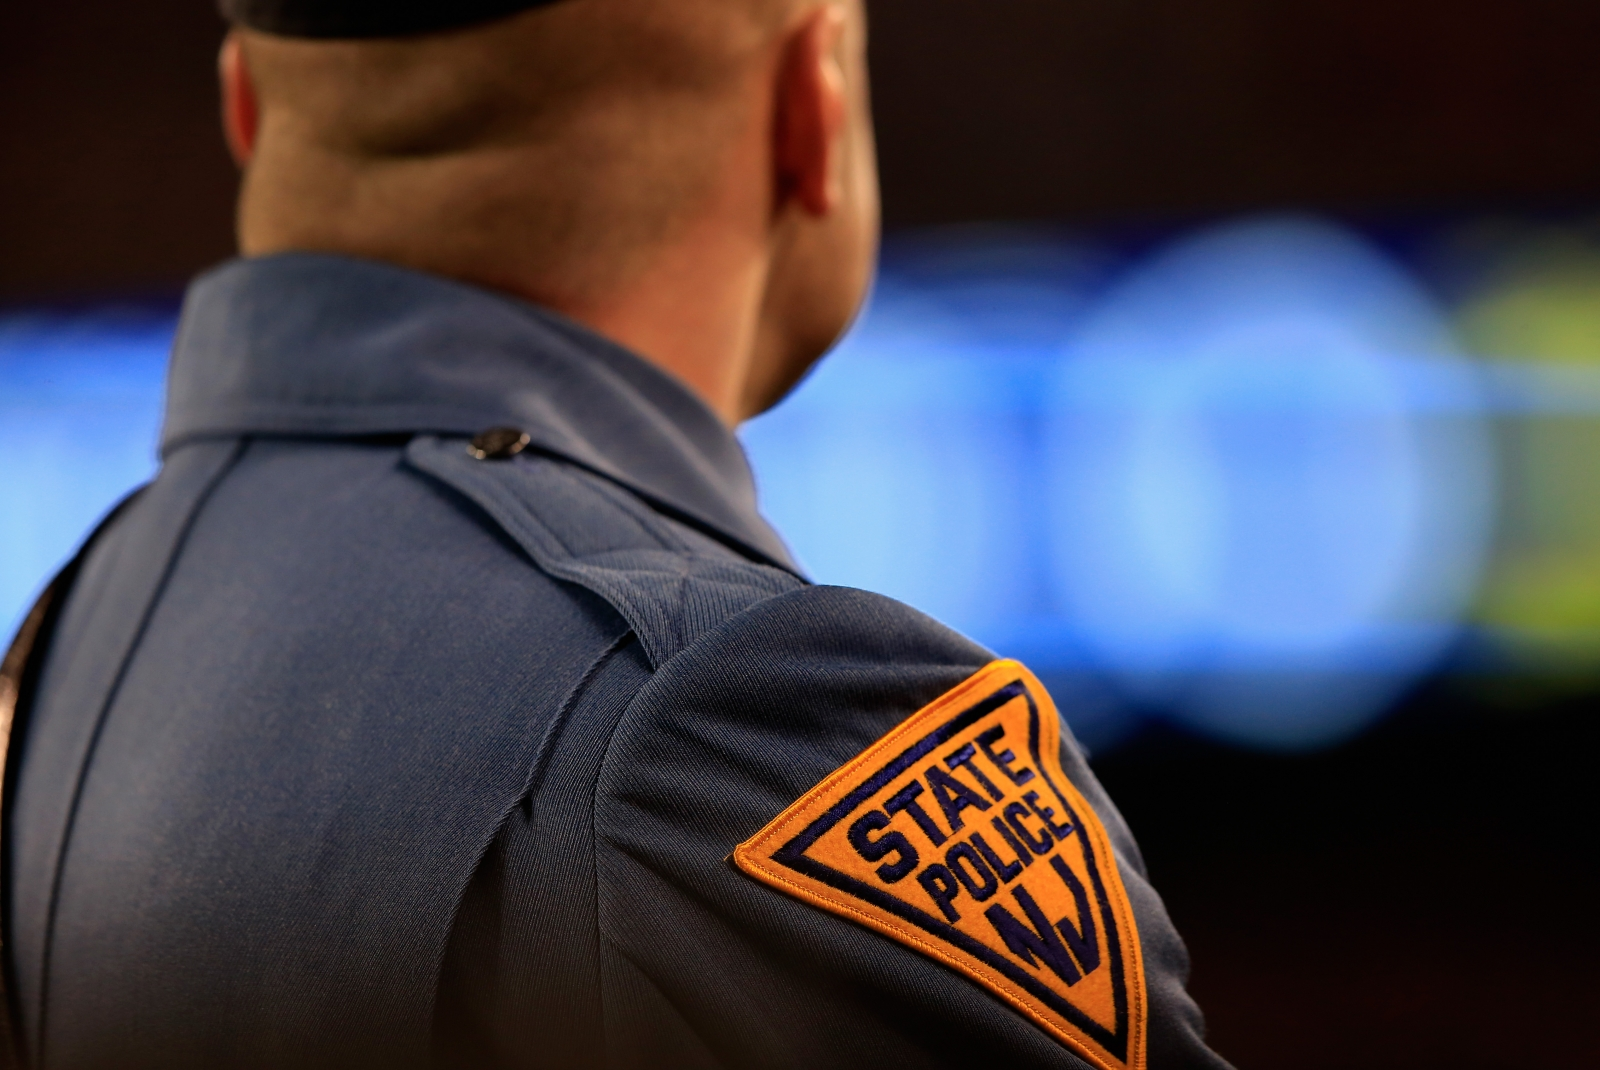 New Jersey police